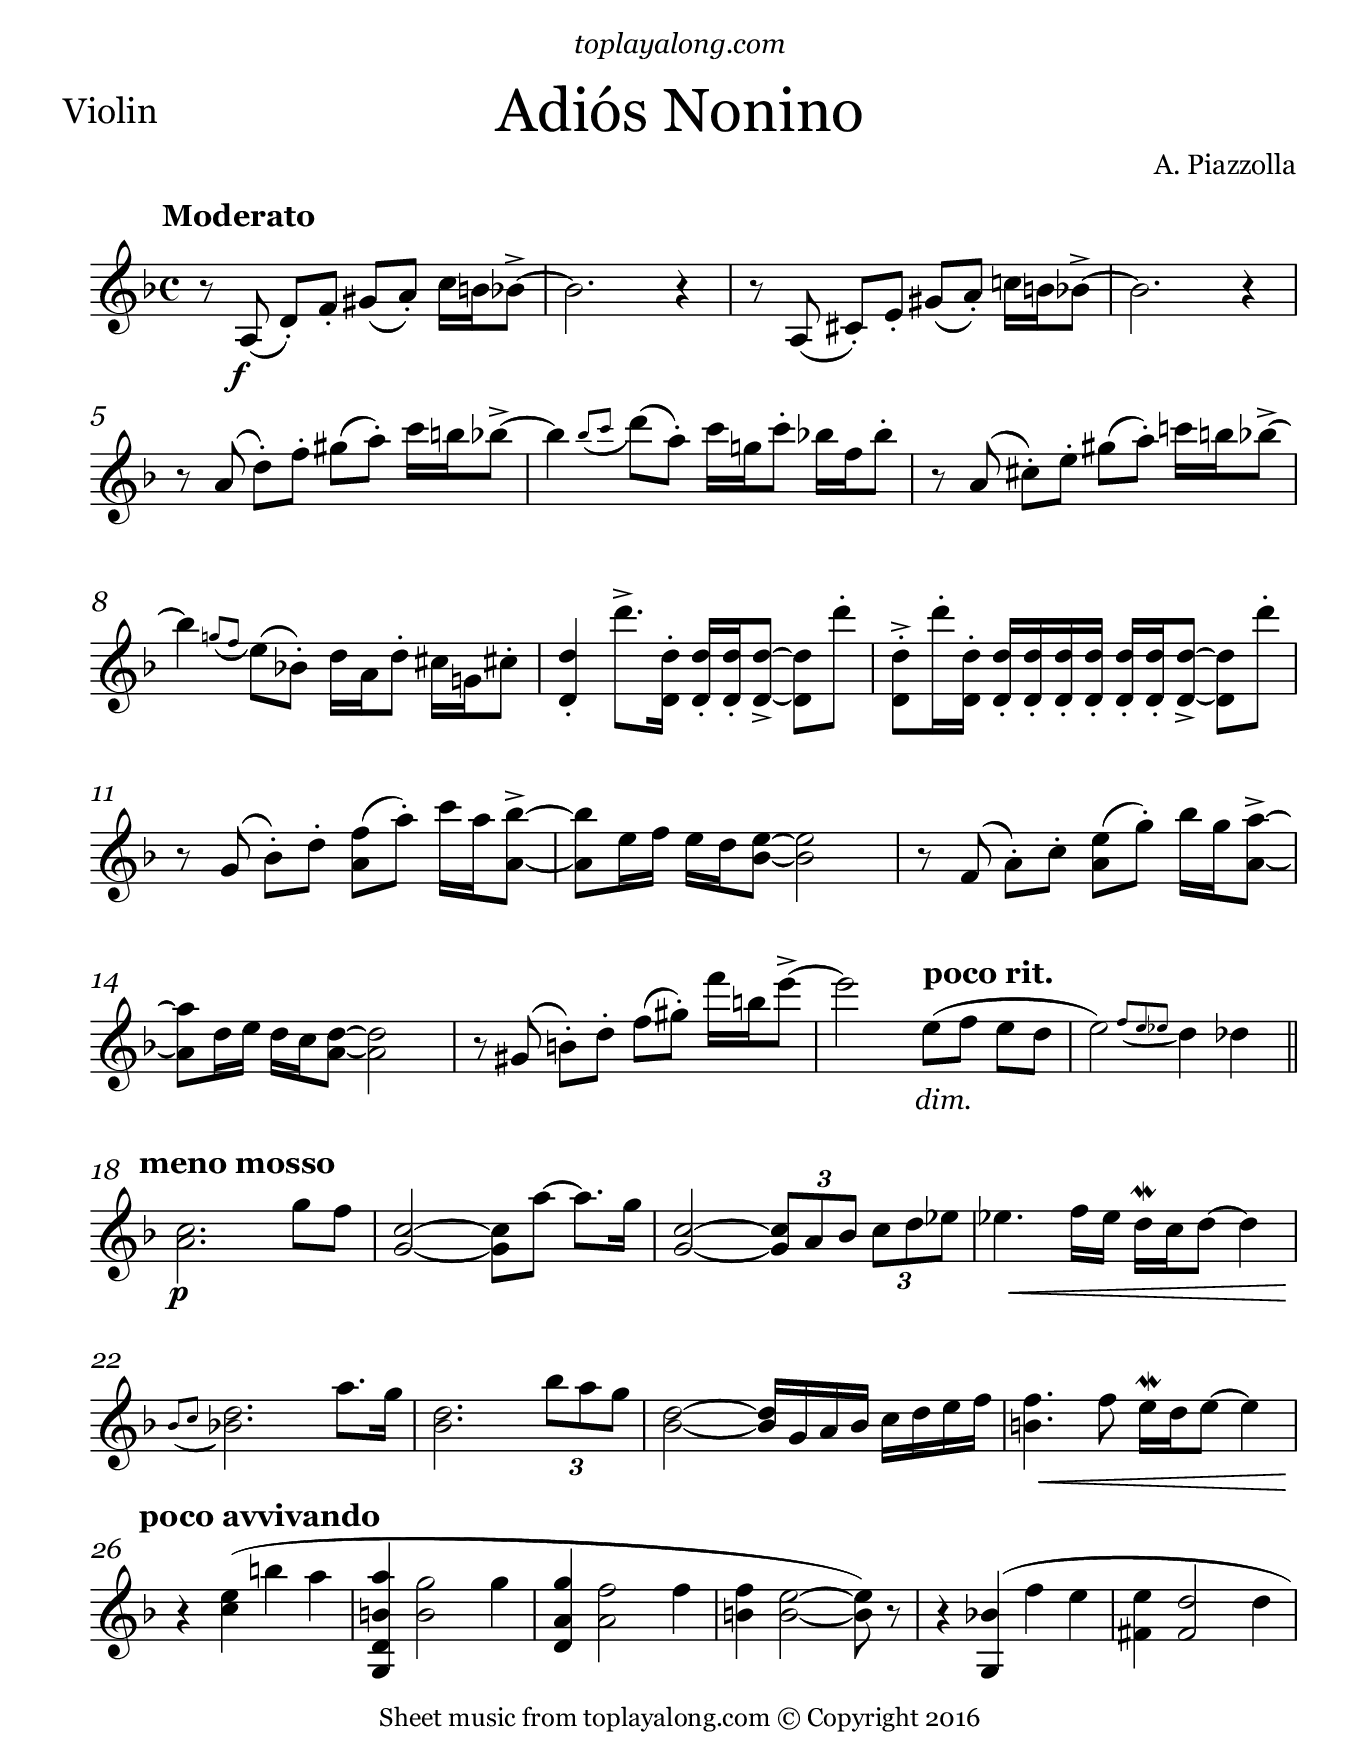 Adiós Nonino by Piazzolla. Sheet music for Violin, page 1.